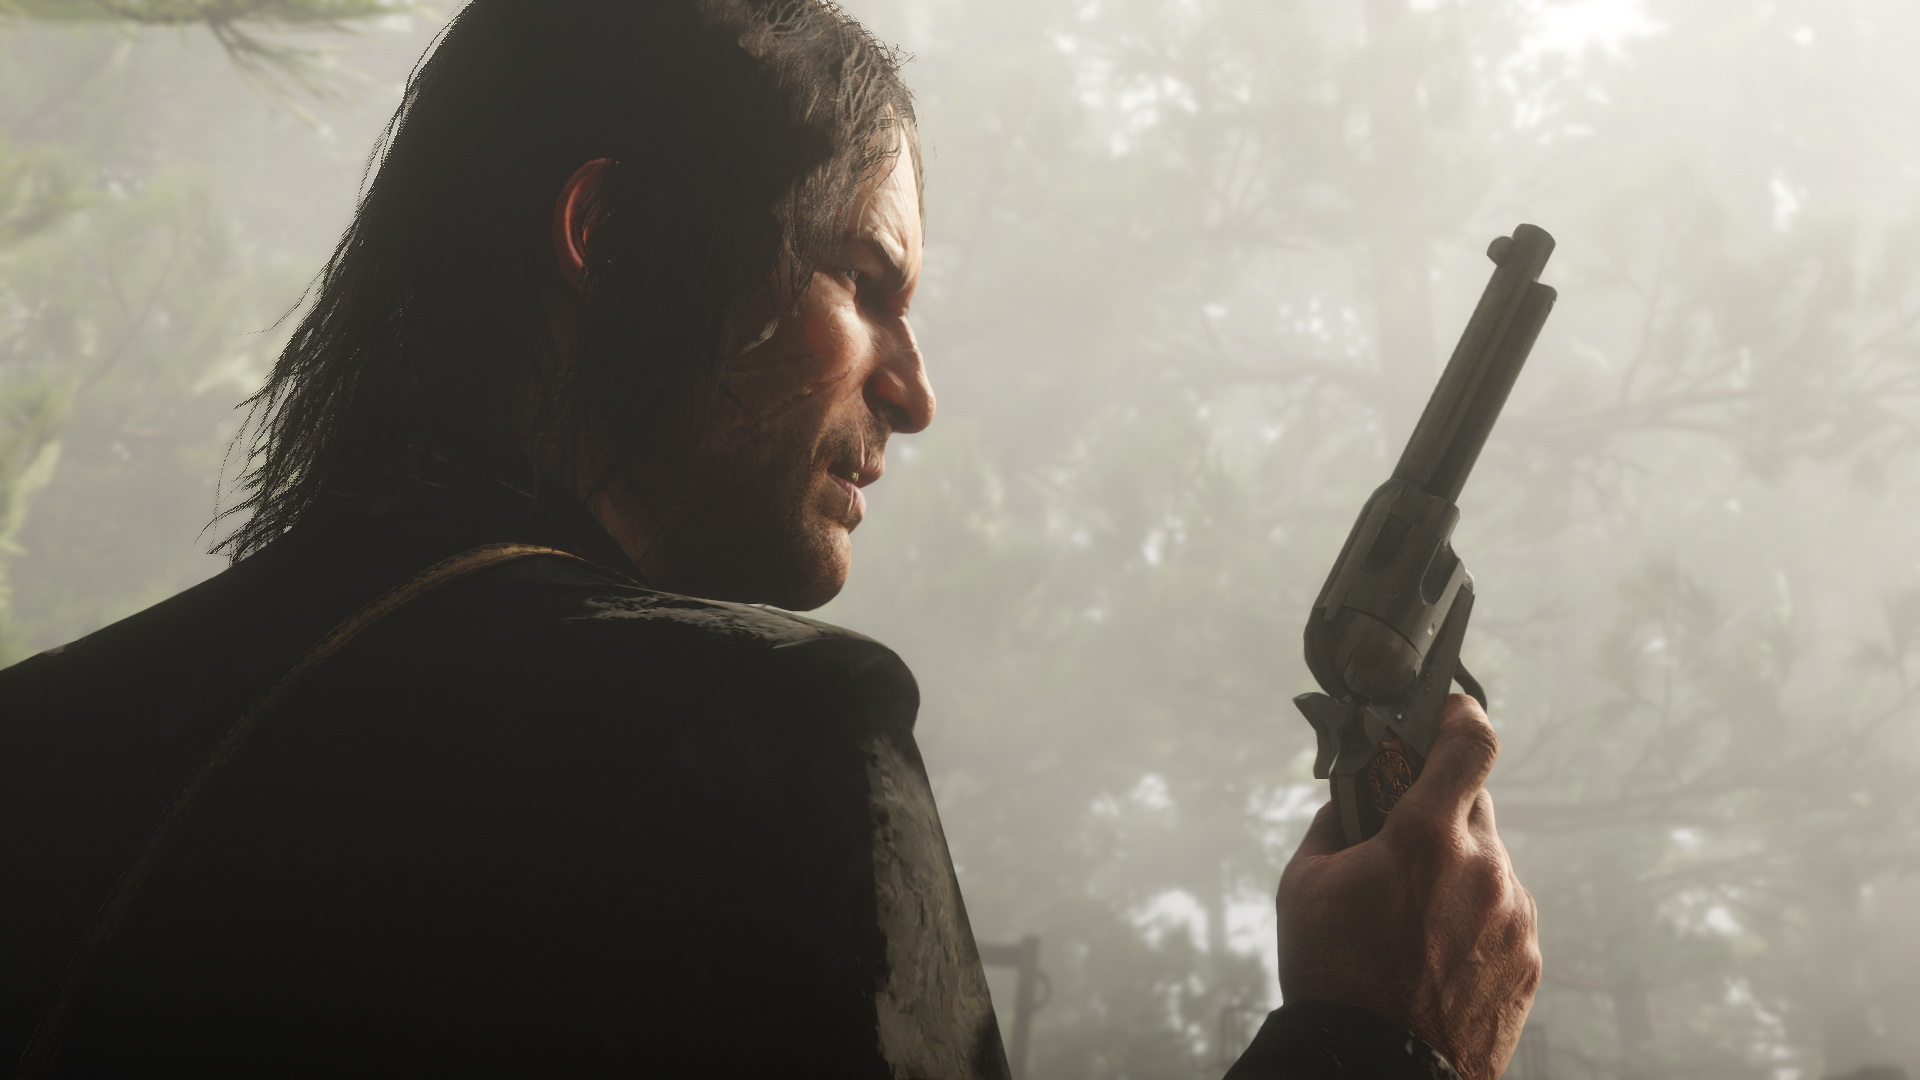 How to craft the most useful item in Red Dead Redemption 2 and expand your inventory